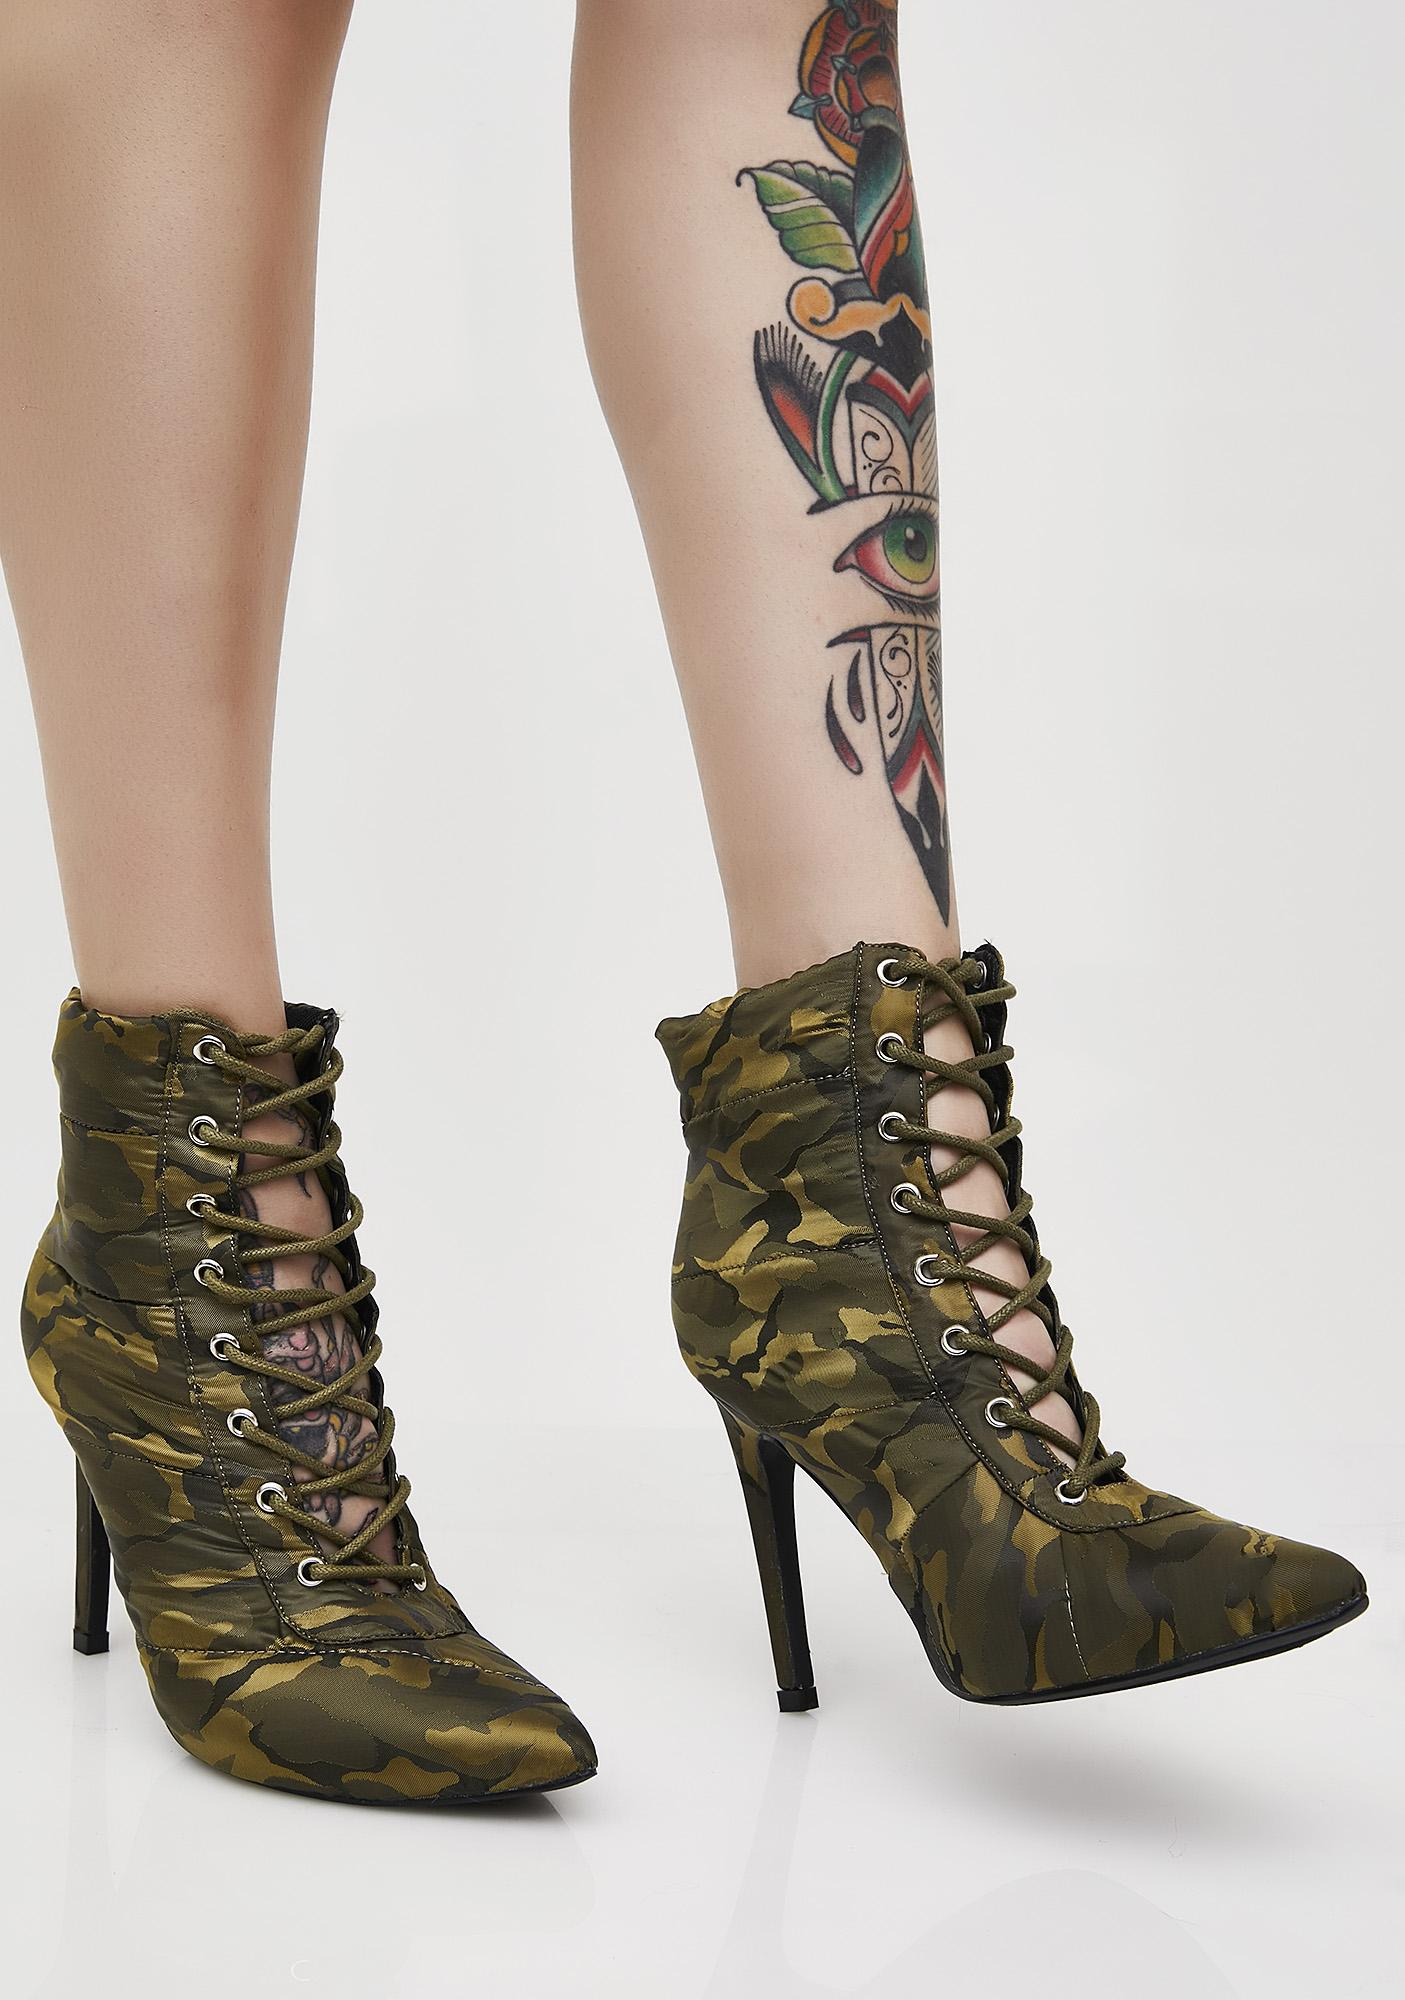 Camo Street Cred Ankle Boots